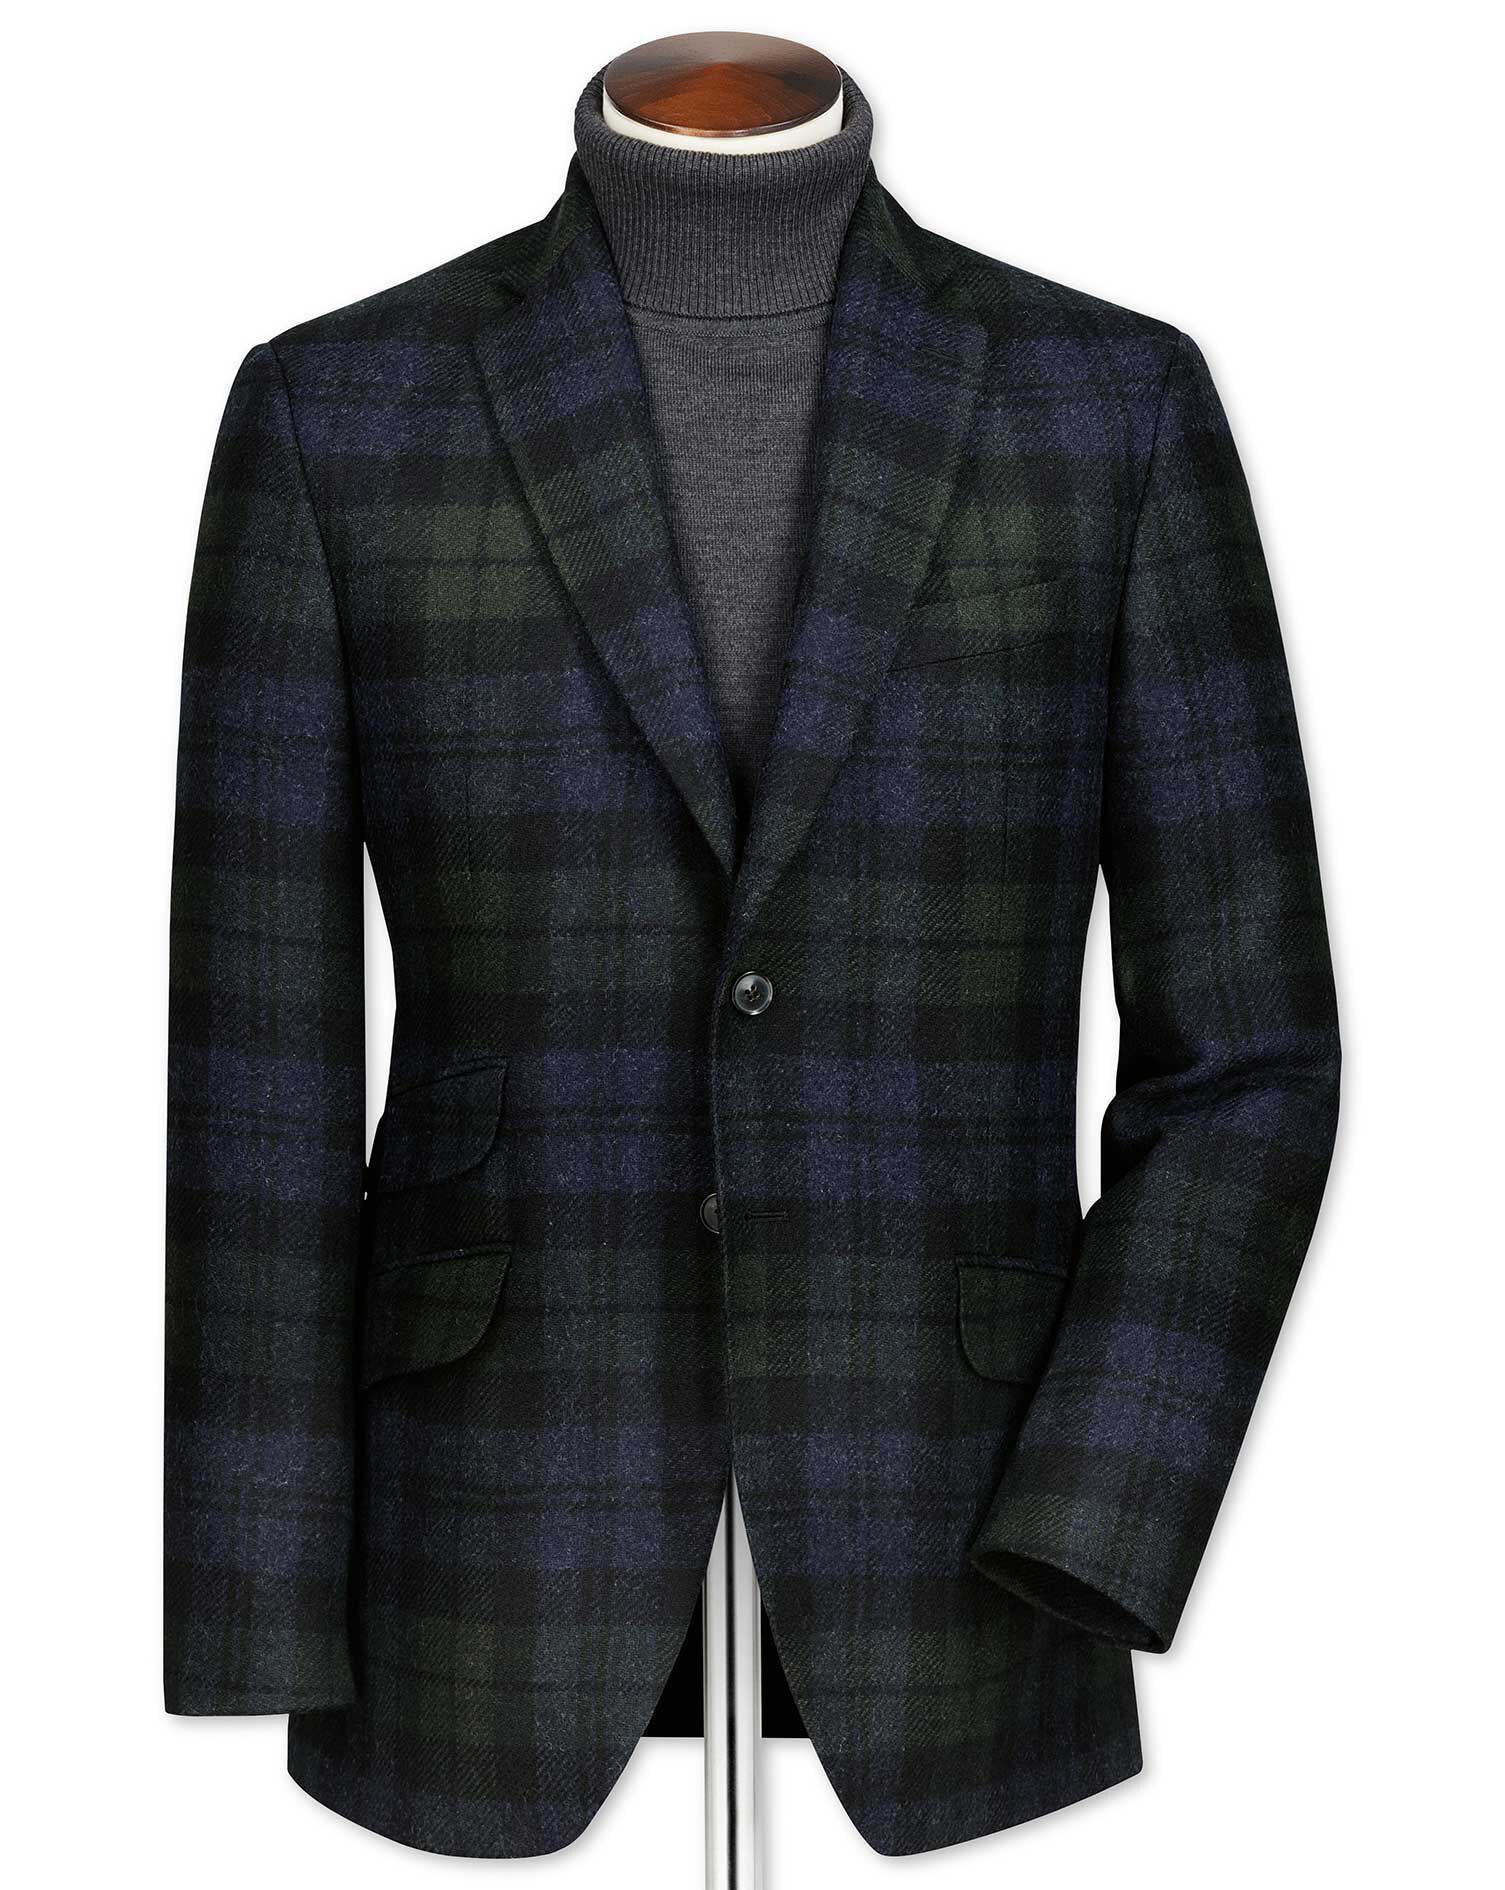 Slim Fit Green and Navy Checkered Wool Wool Jacket Size 46 Long by Charles Tyrwhitt